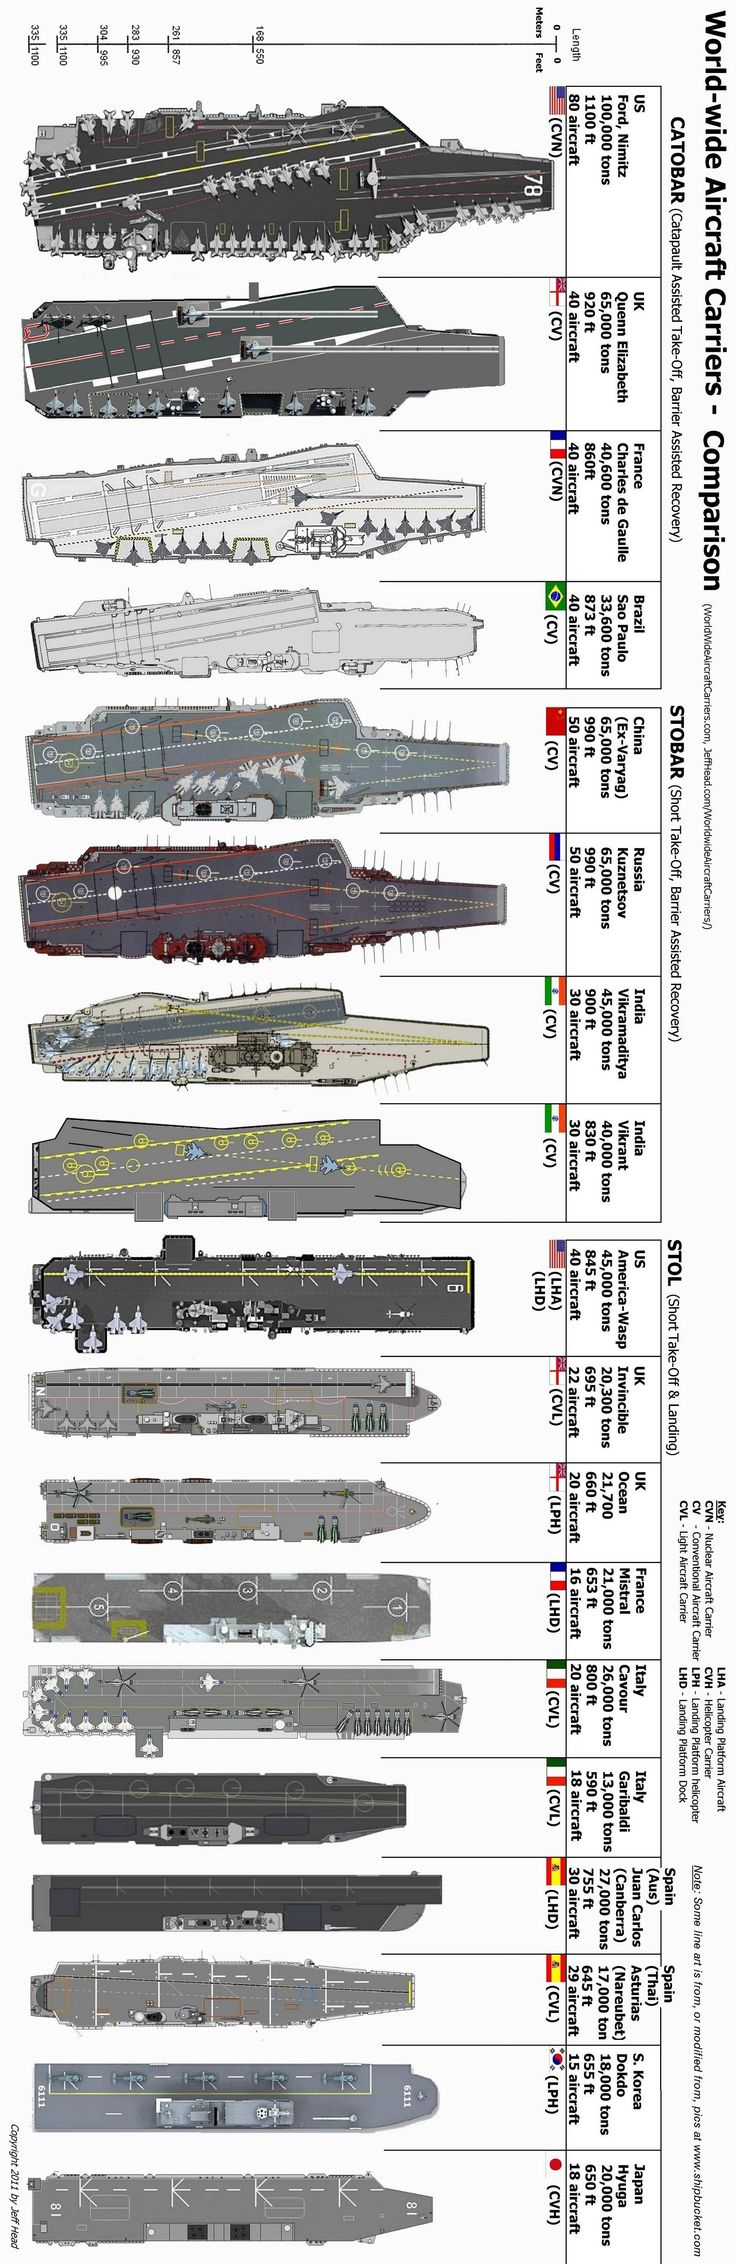 Aircraft Carriers Comparison.